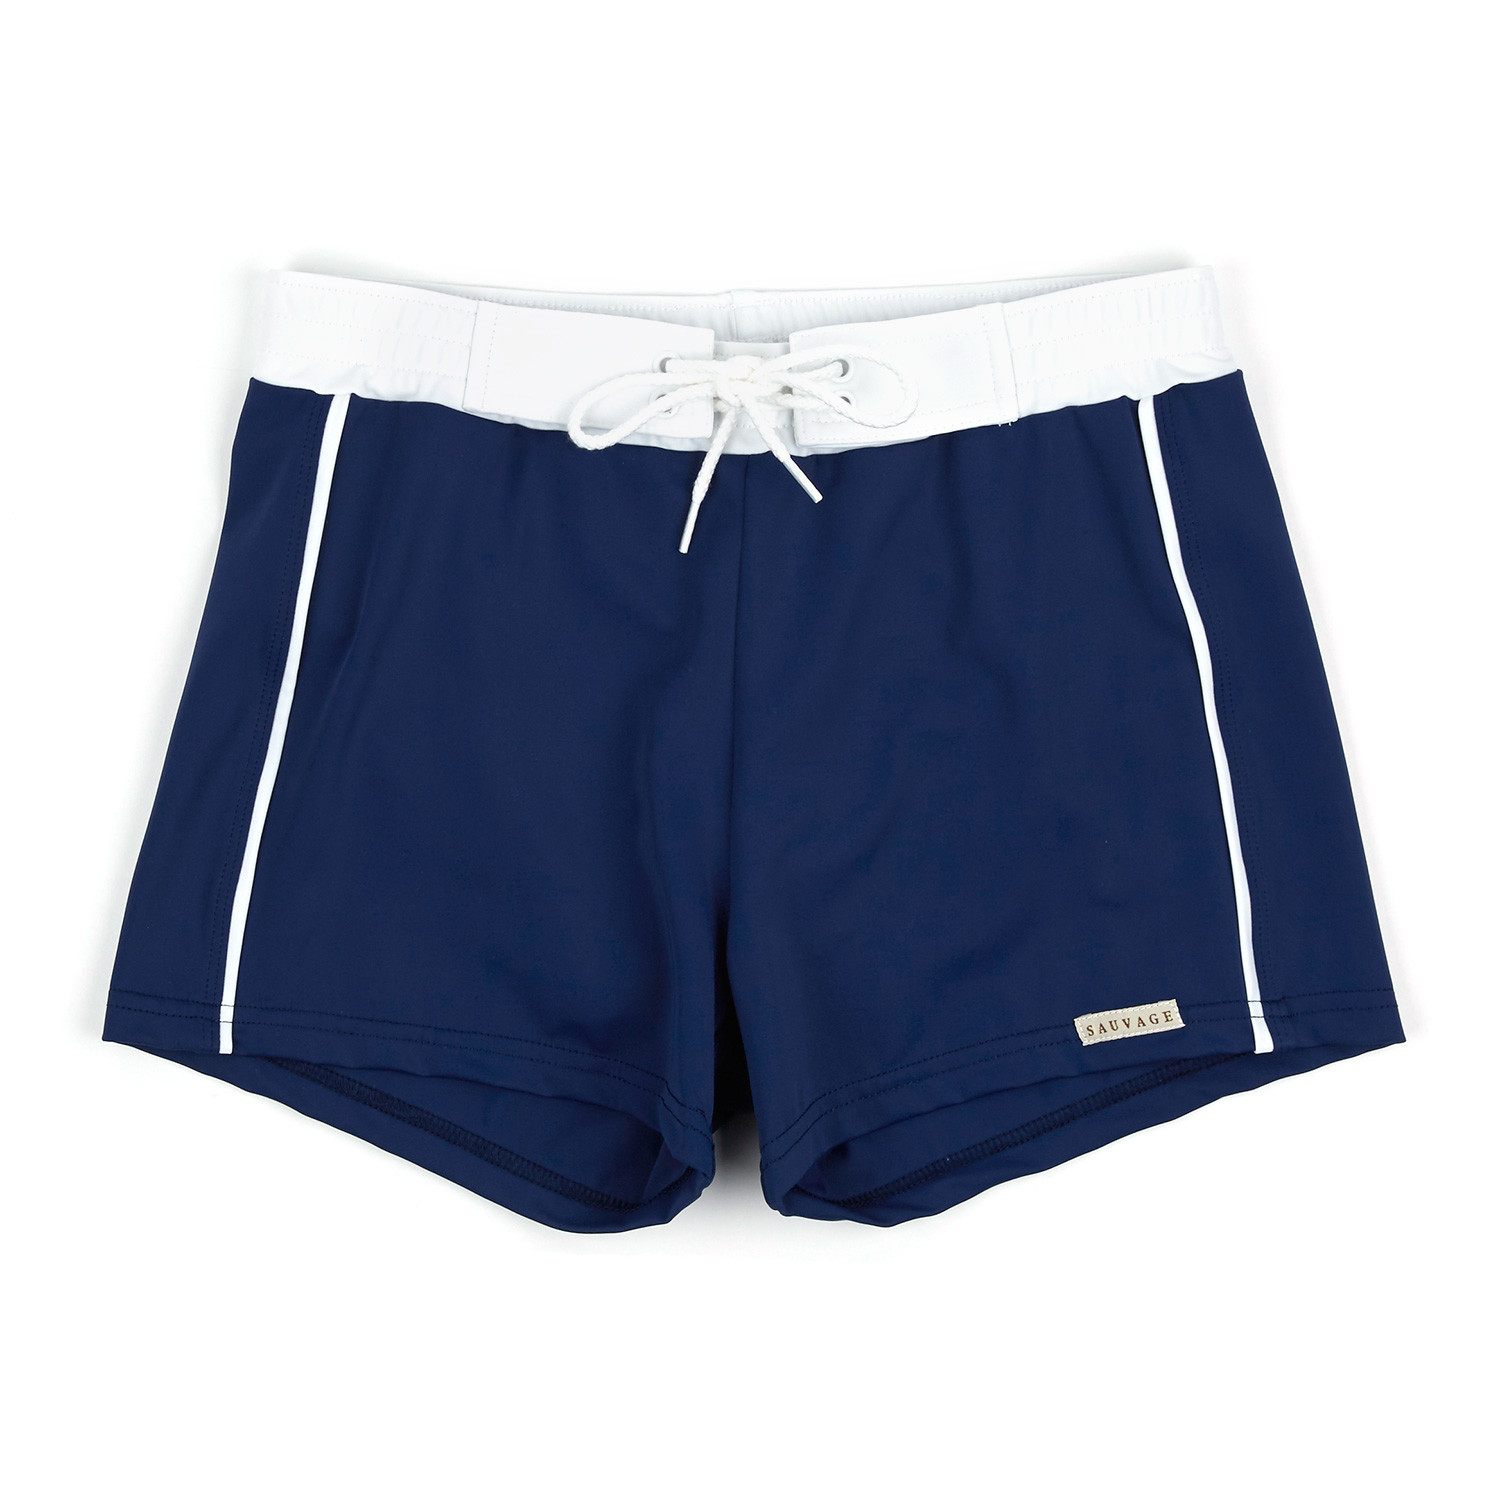 a9e38066a8 Banded Swim Short // Navy (S) - Sauvage Swimwear - Touch of Modern